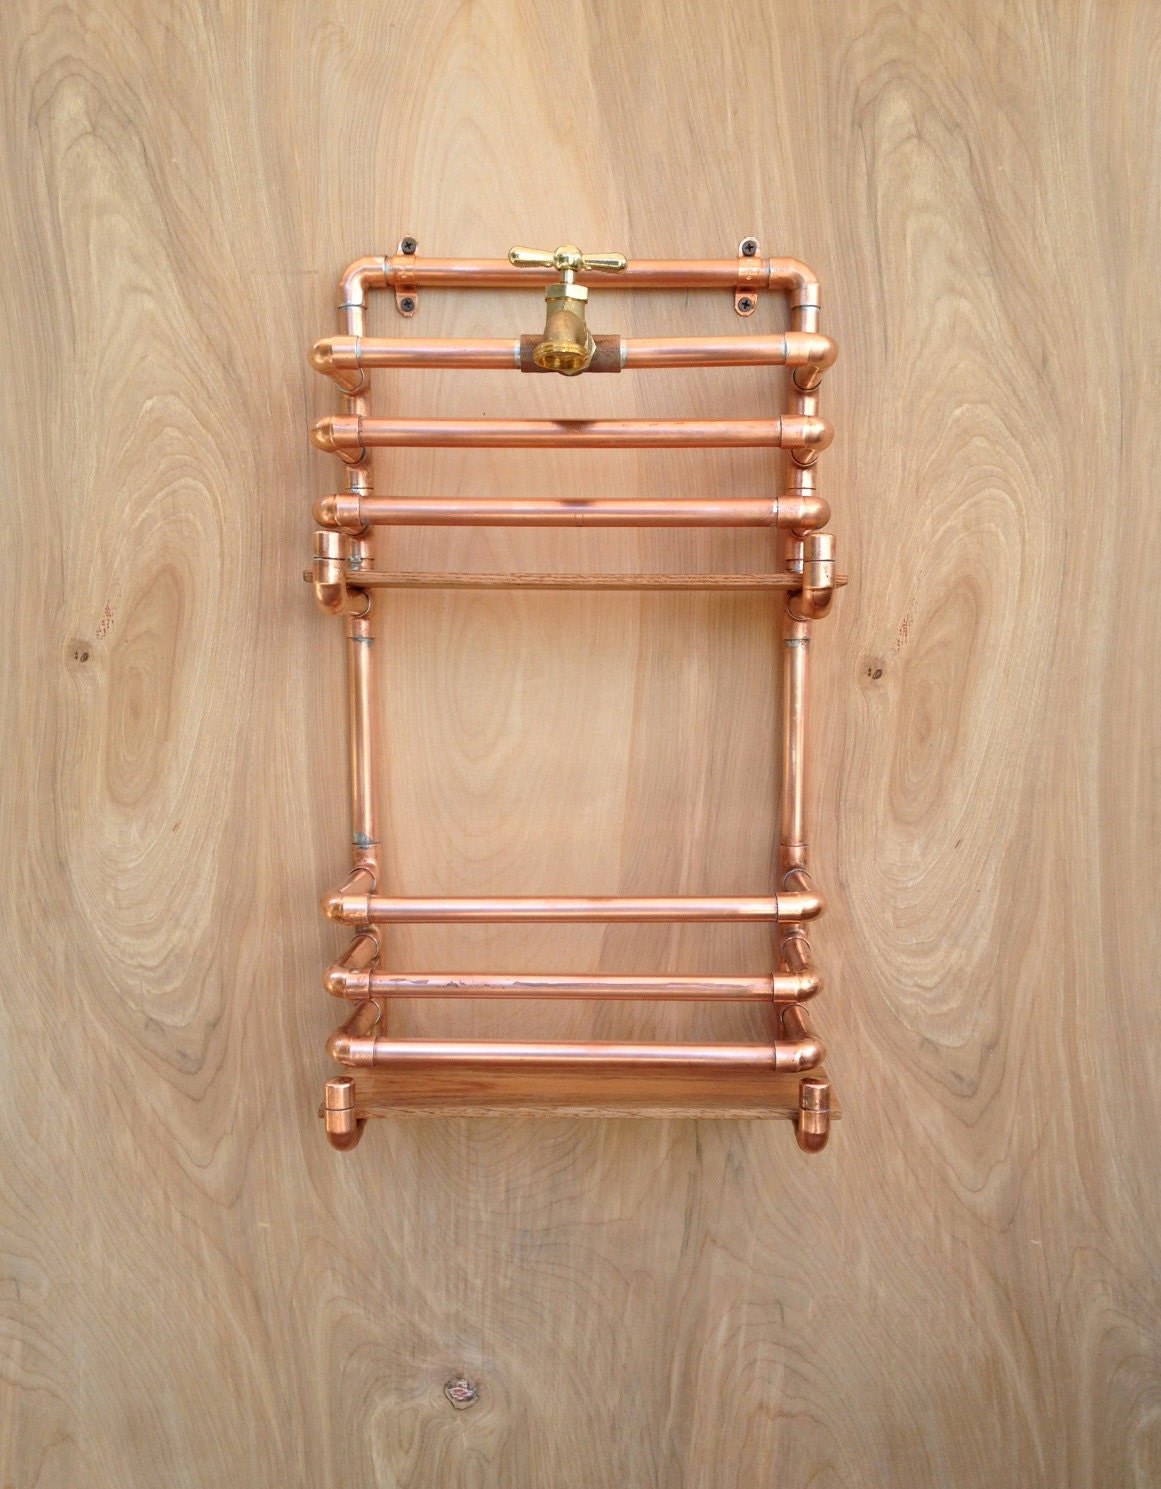 Copper Magazine Rack Wall Storage Rack Industrial Design